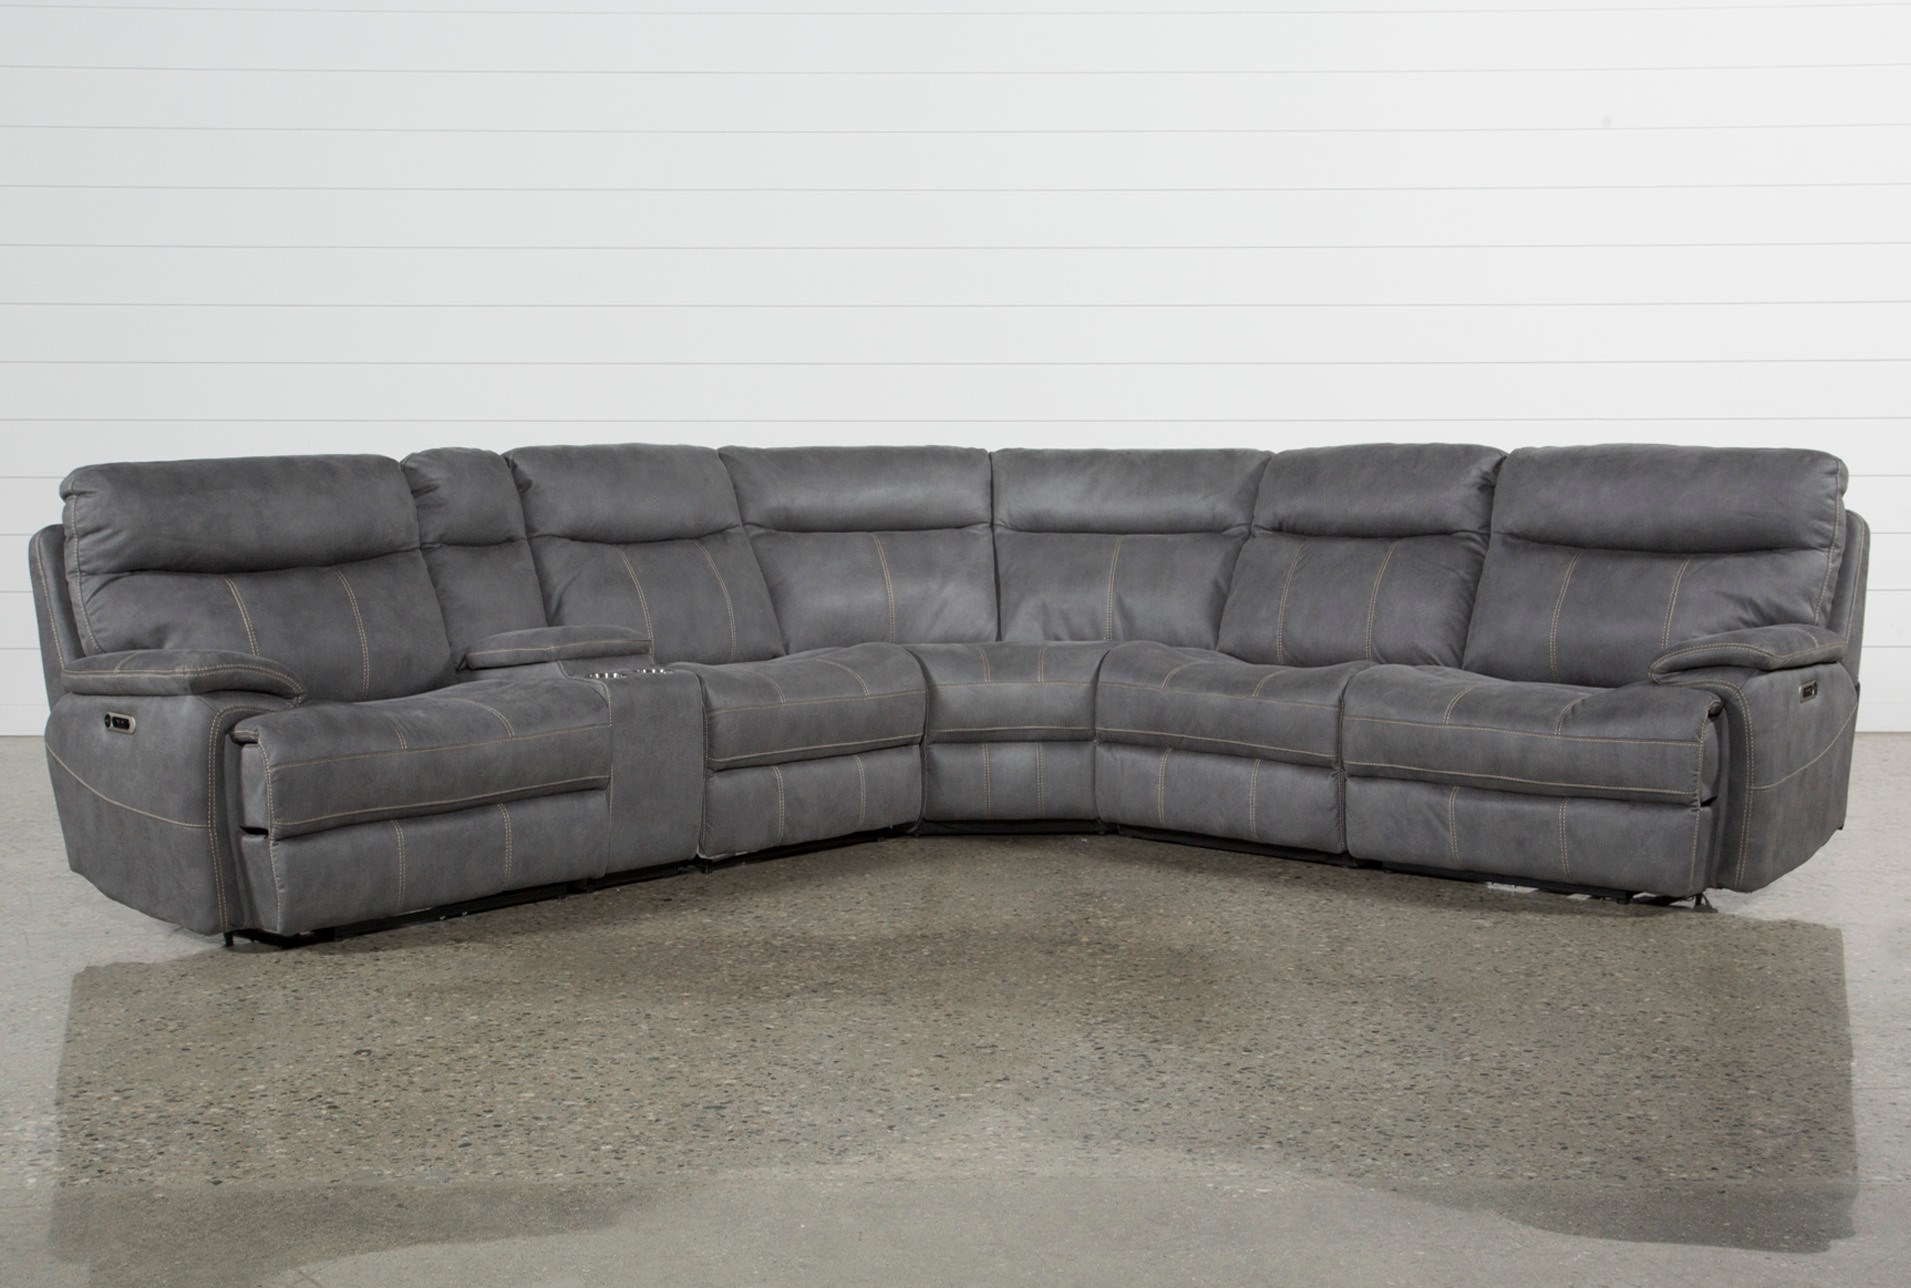 Denali Light Grey 6 Piece Reclining Sectional W 2 Headrests Qty 1 Has Been Successfully Added To Your Cart